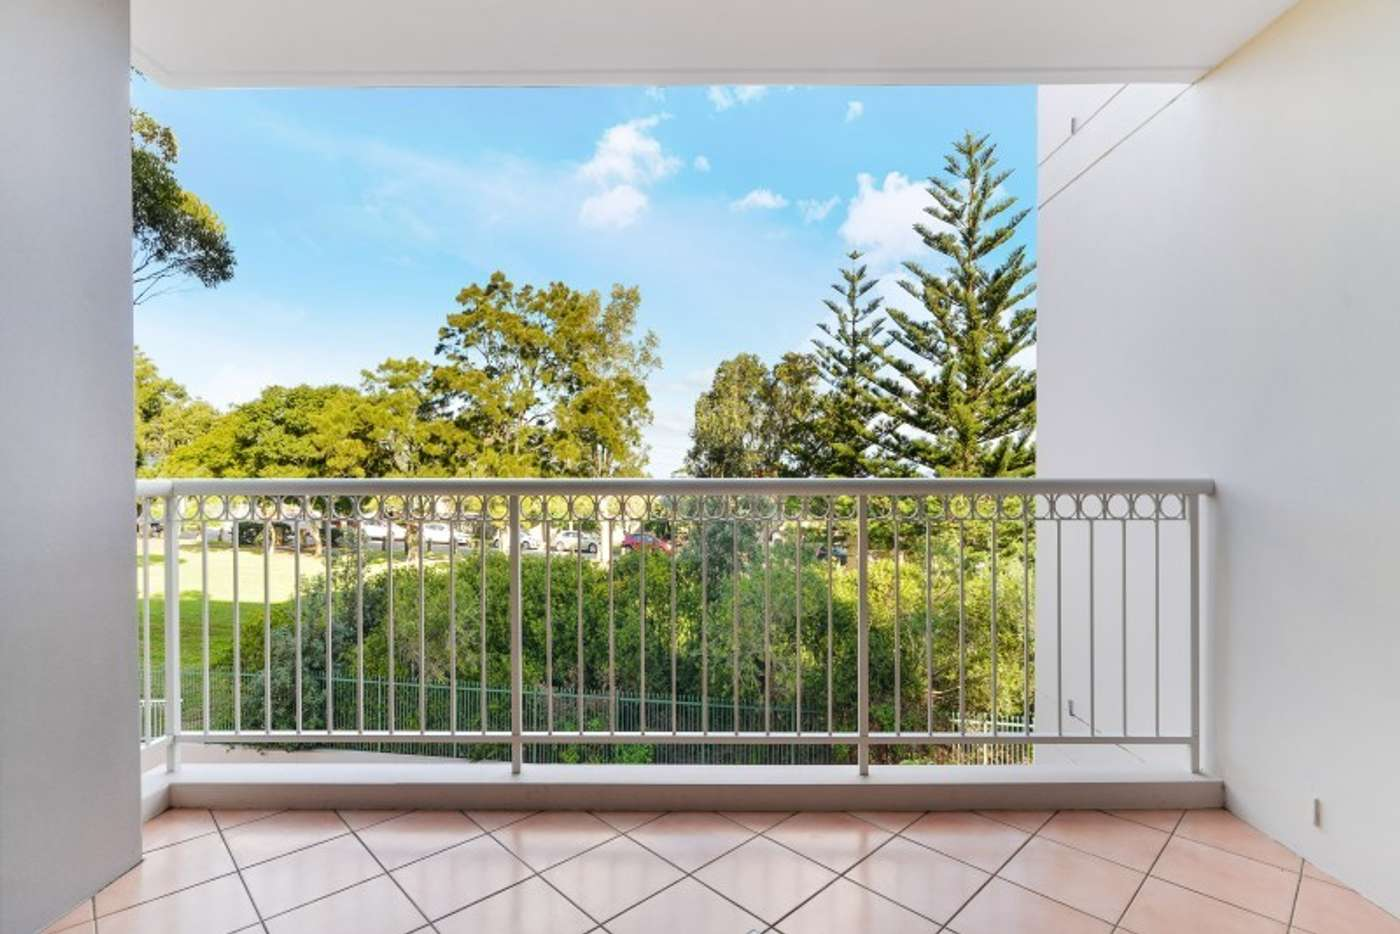 Sixth view of Homely apartment listing, 755/83-93 Dalmeny Avenue, Rosebery NSW 2018